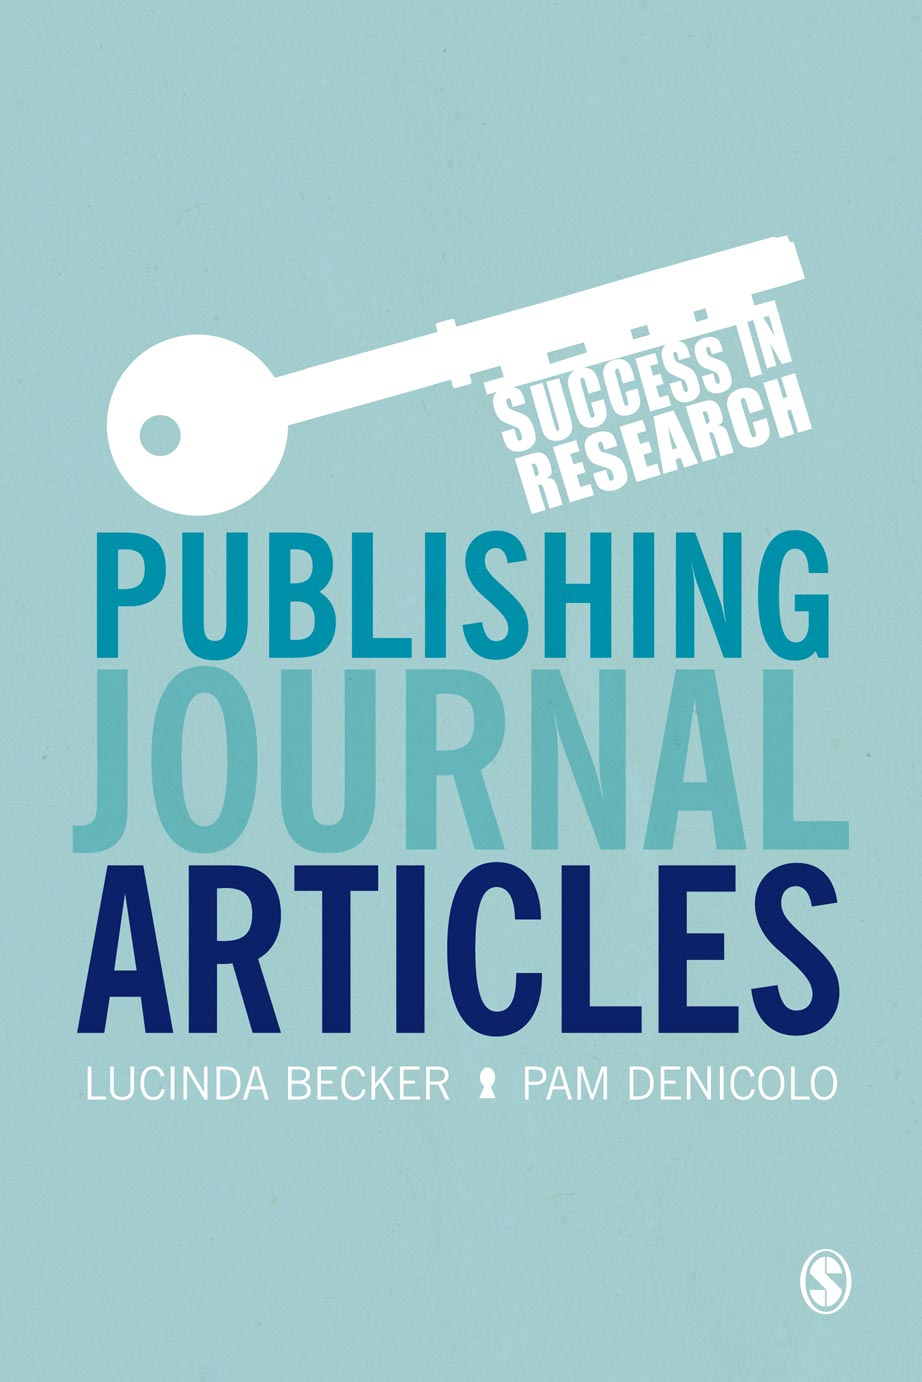 Download Ebook Publishing Journal Articles by Lucinda Becker Pdf